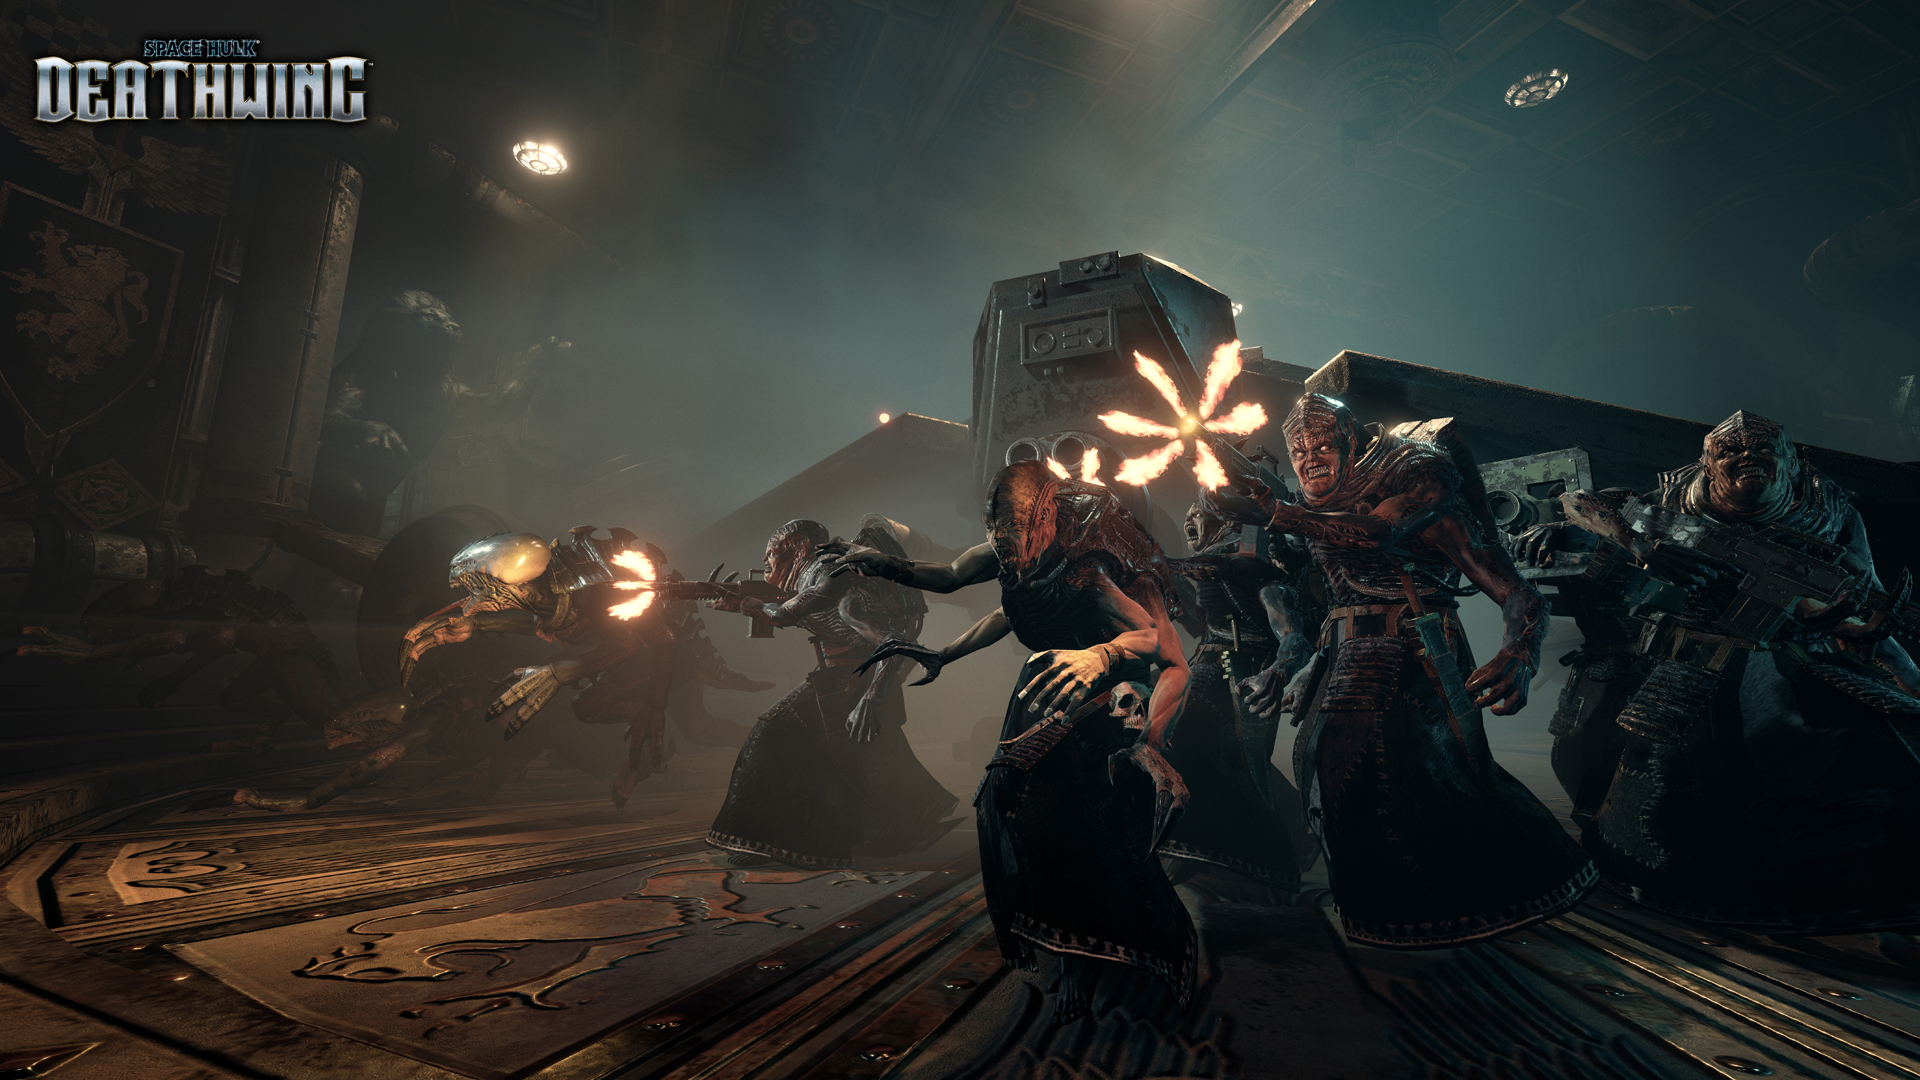 Space Hulk Deathwing PS4 Review - Gonna Need More Bolters